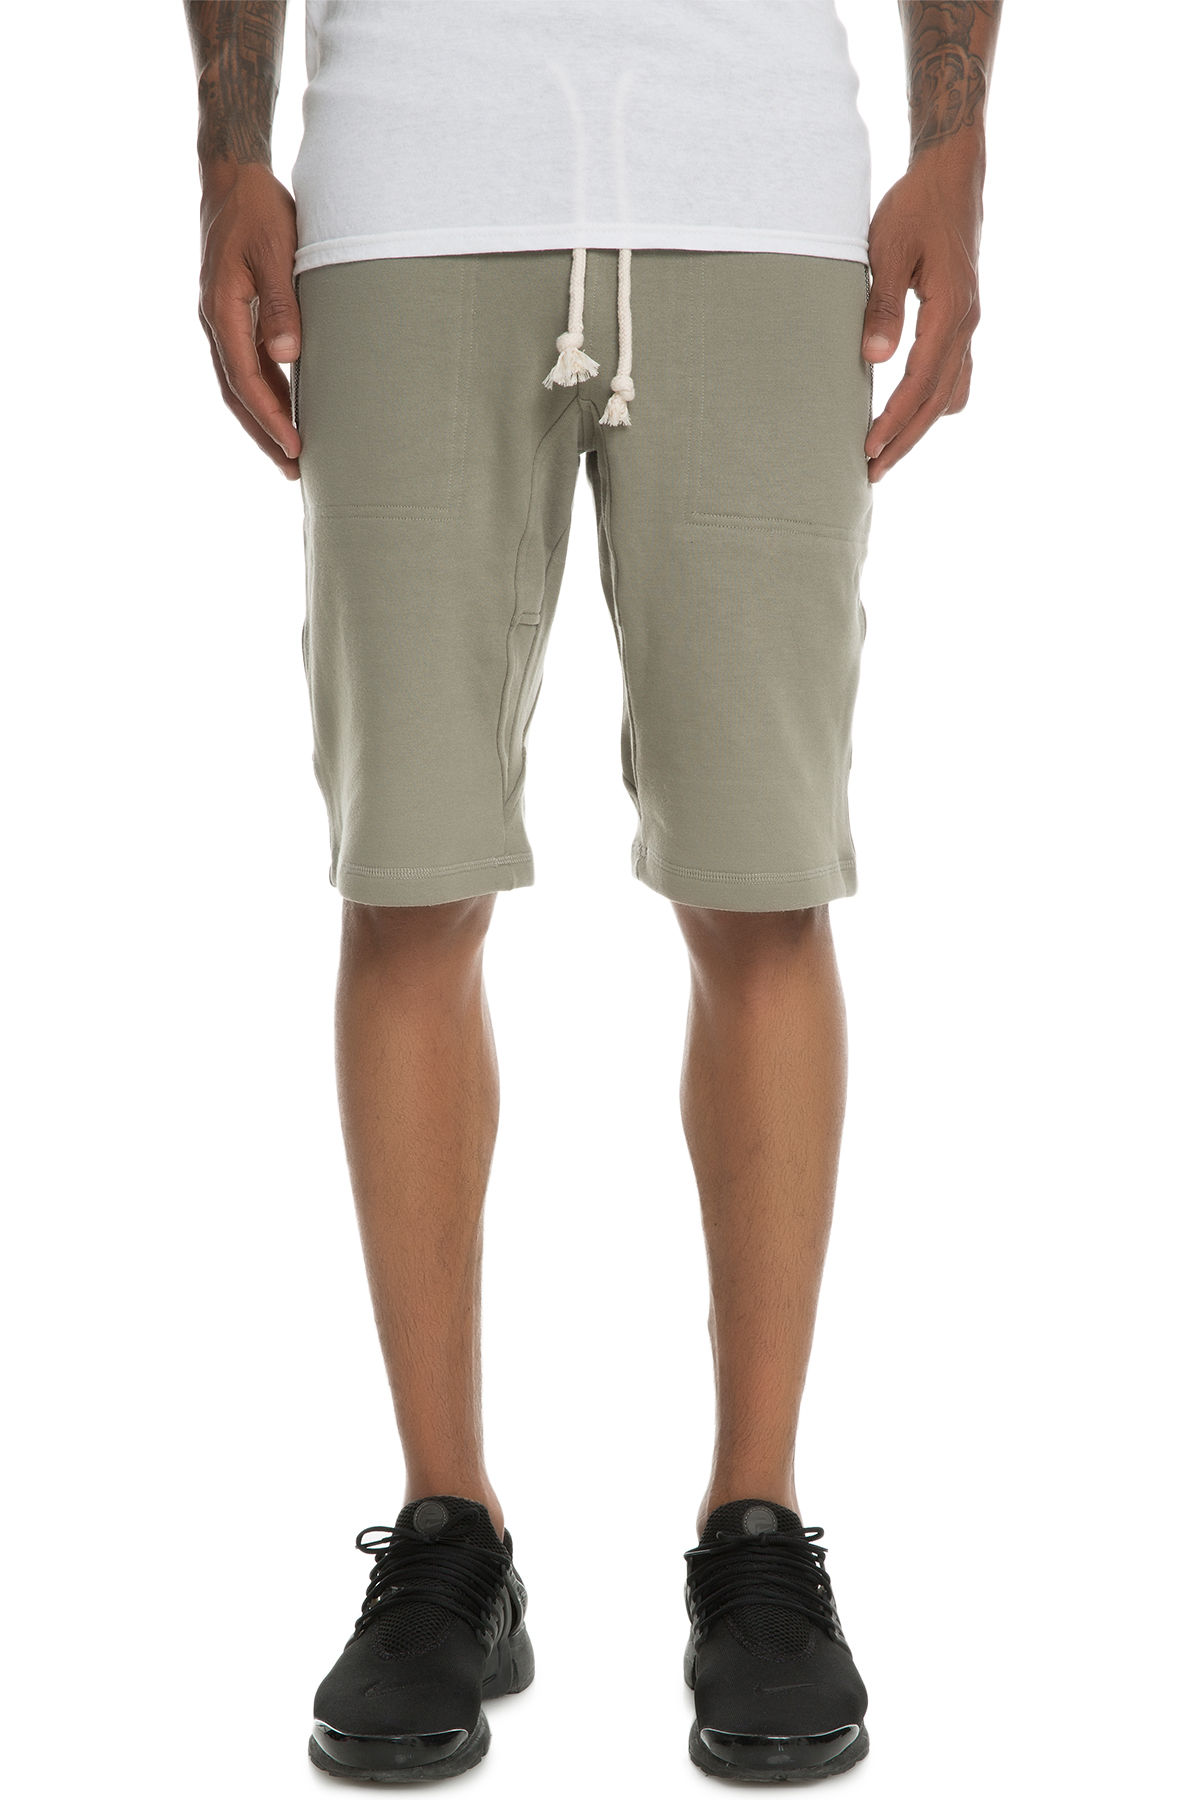 Image of The Laurencio Fleece shorts in Olive